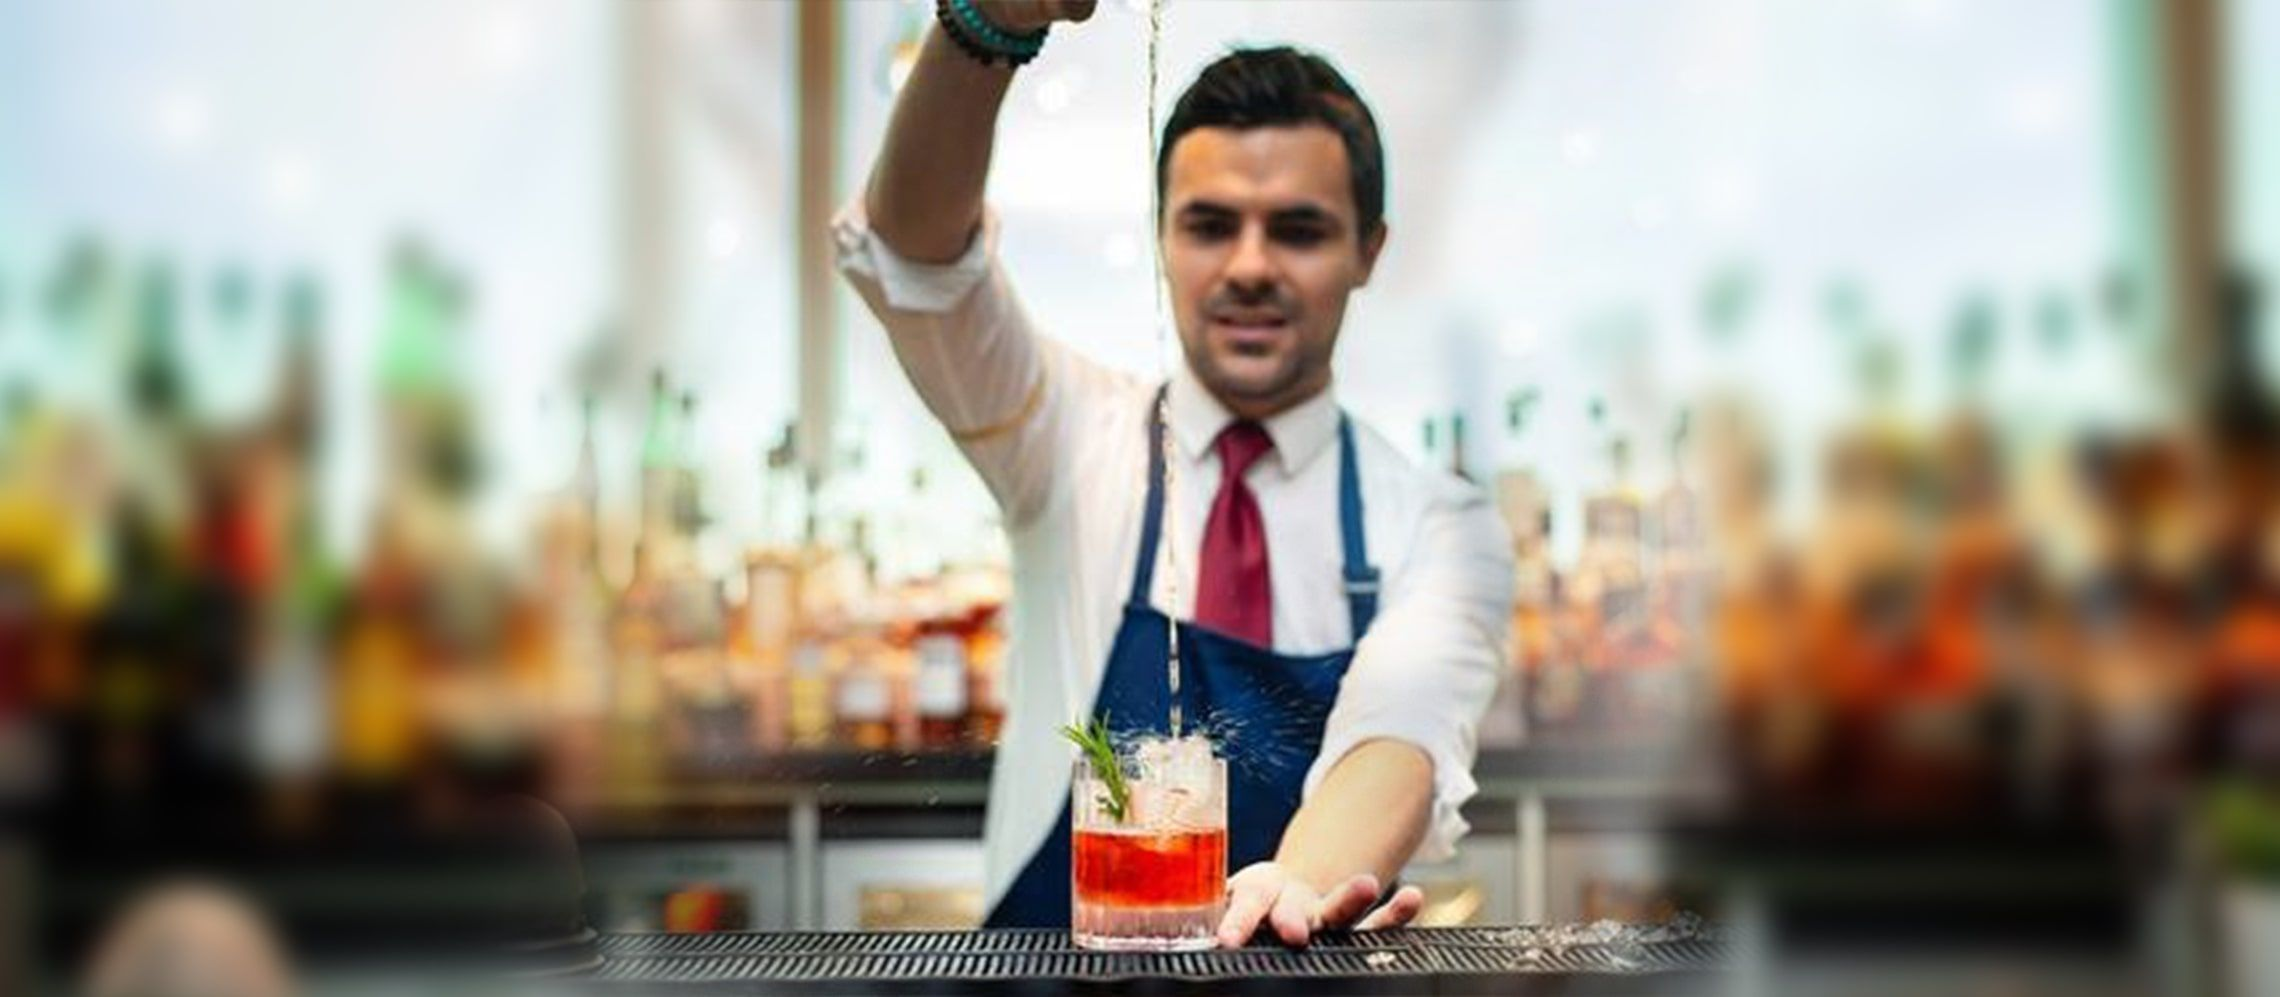 Photo for: How To Make It As A Bartender - Tips From The Best